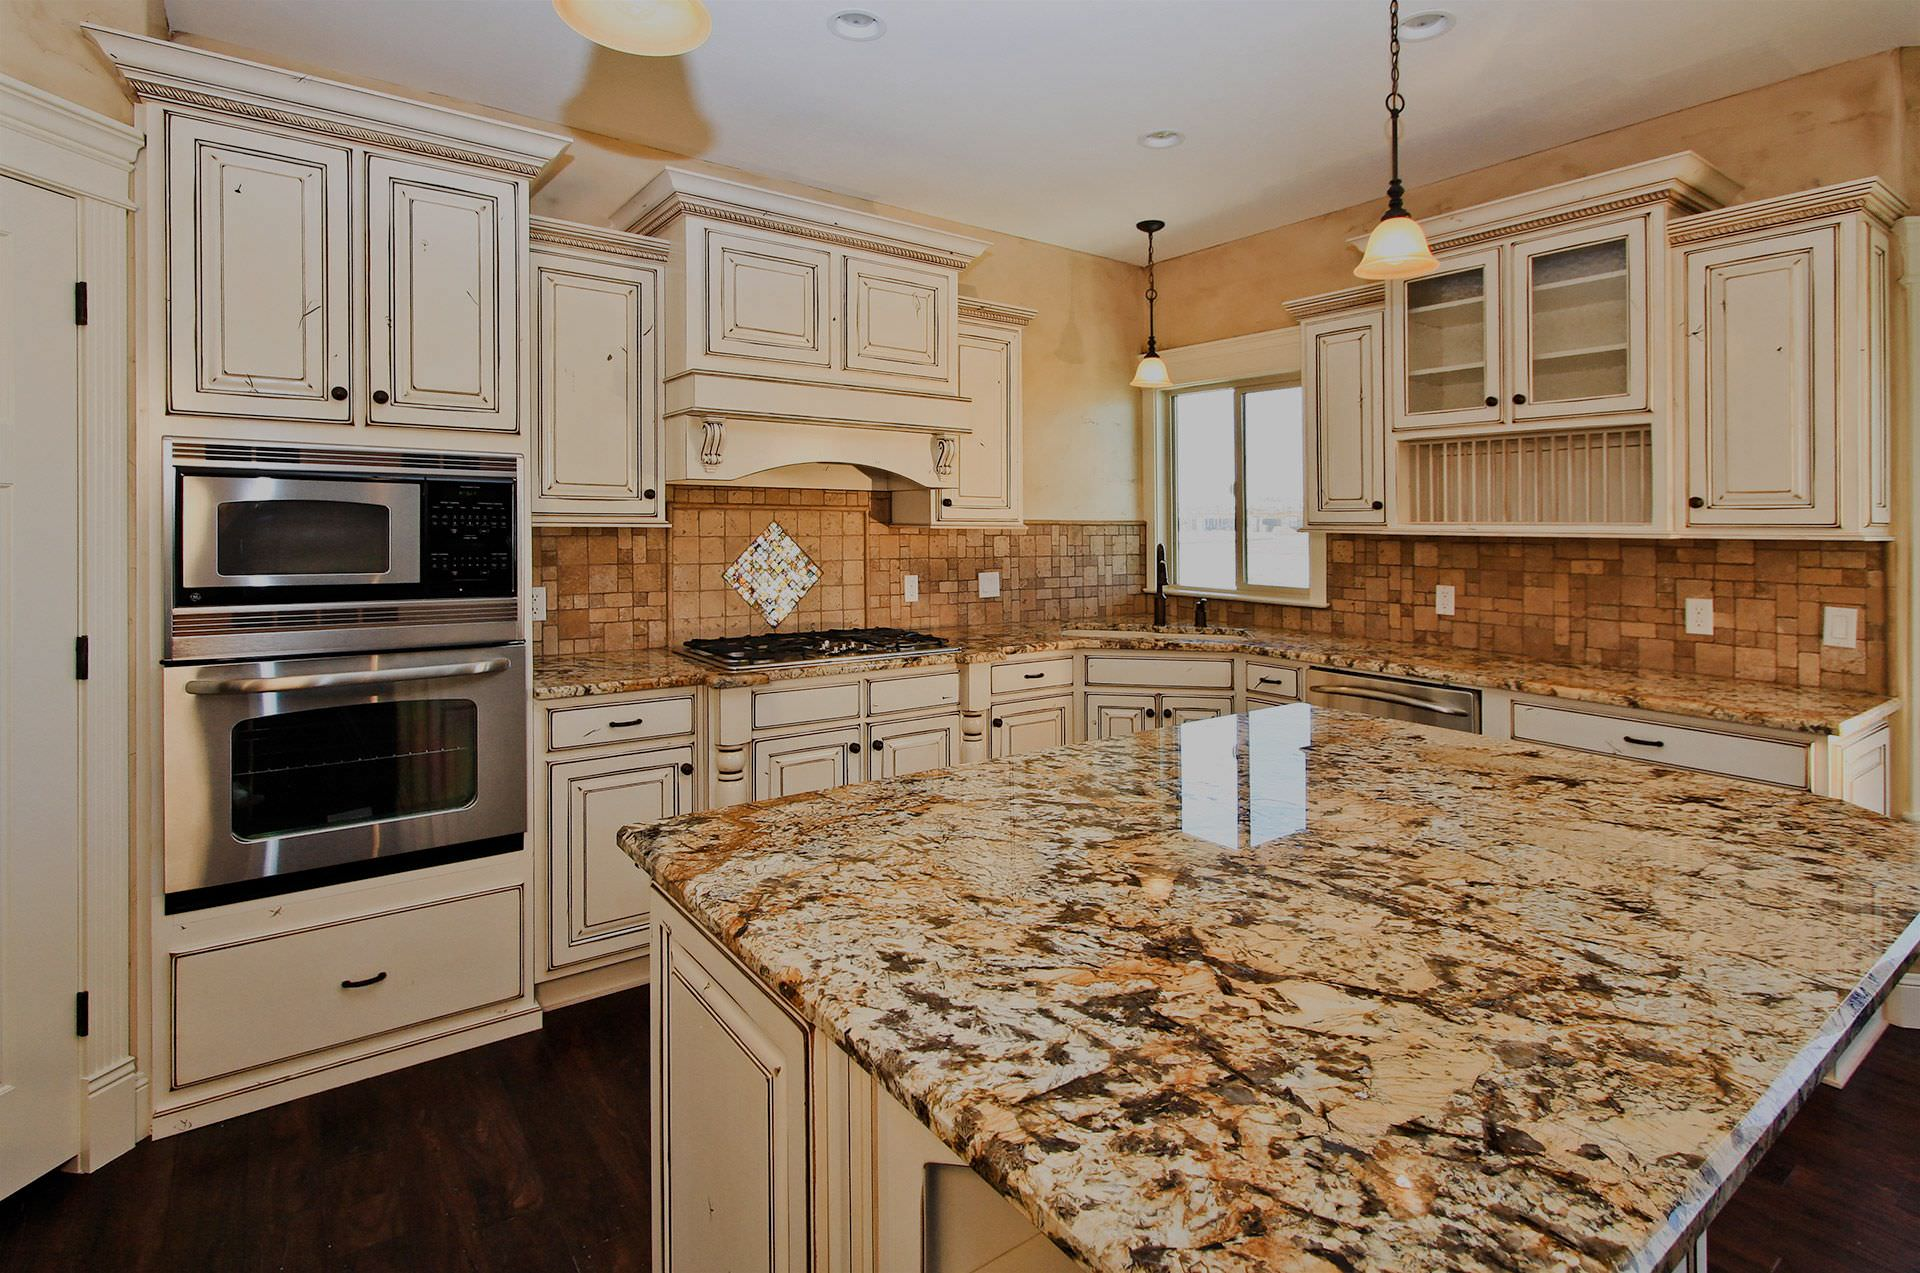 Granite Countertops Manassas Va Fairfax Granite Countertops Quartz Marble Granite Asap